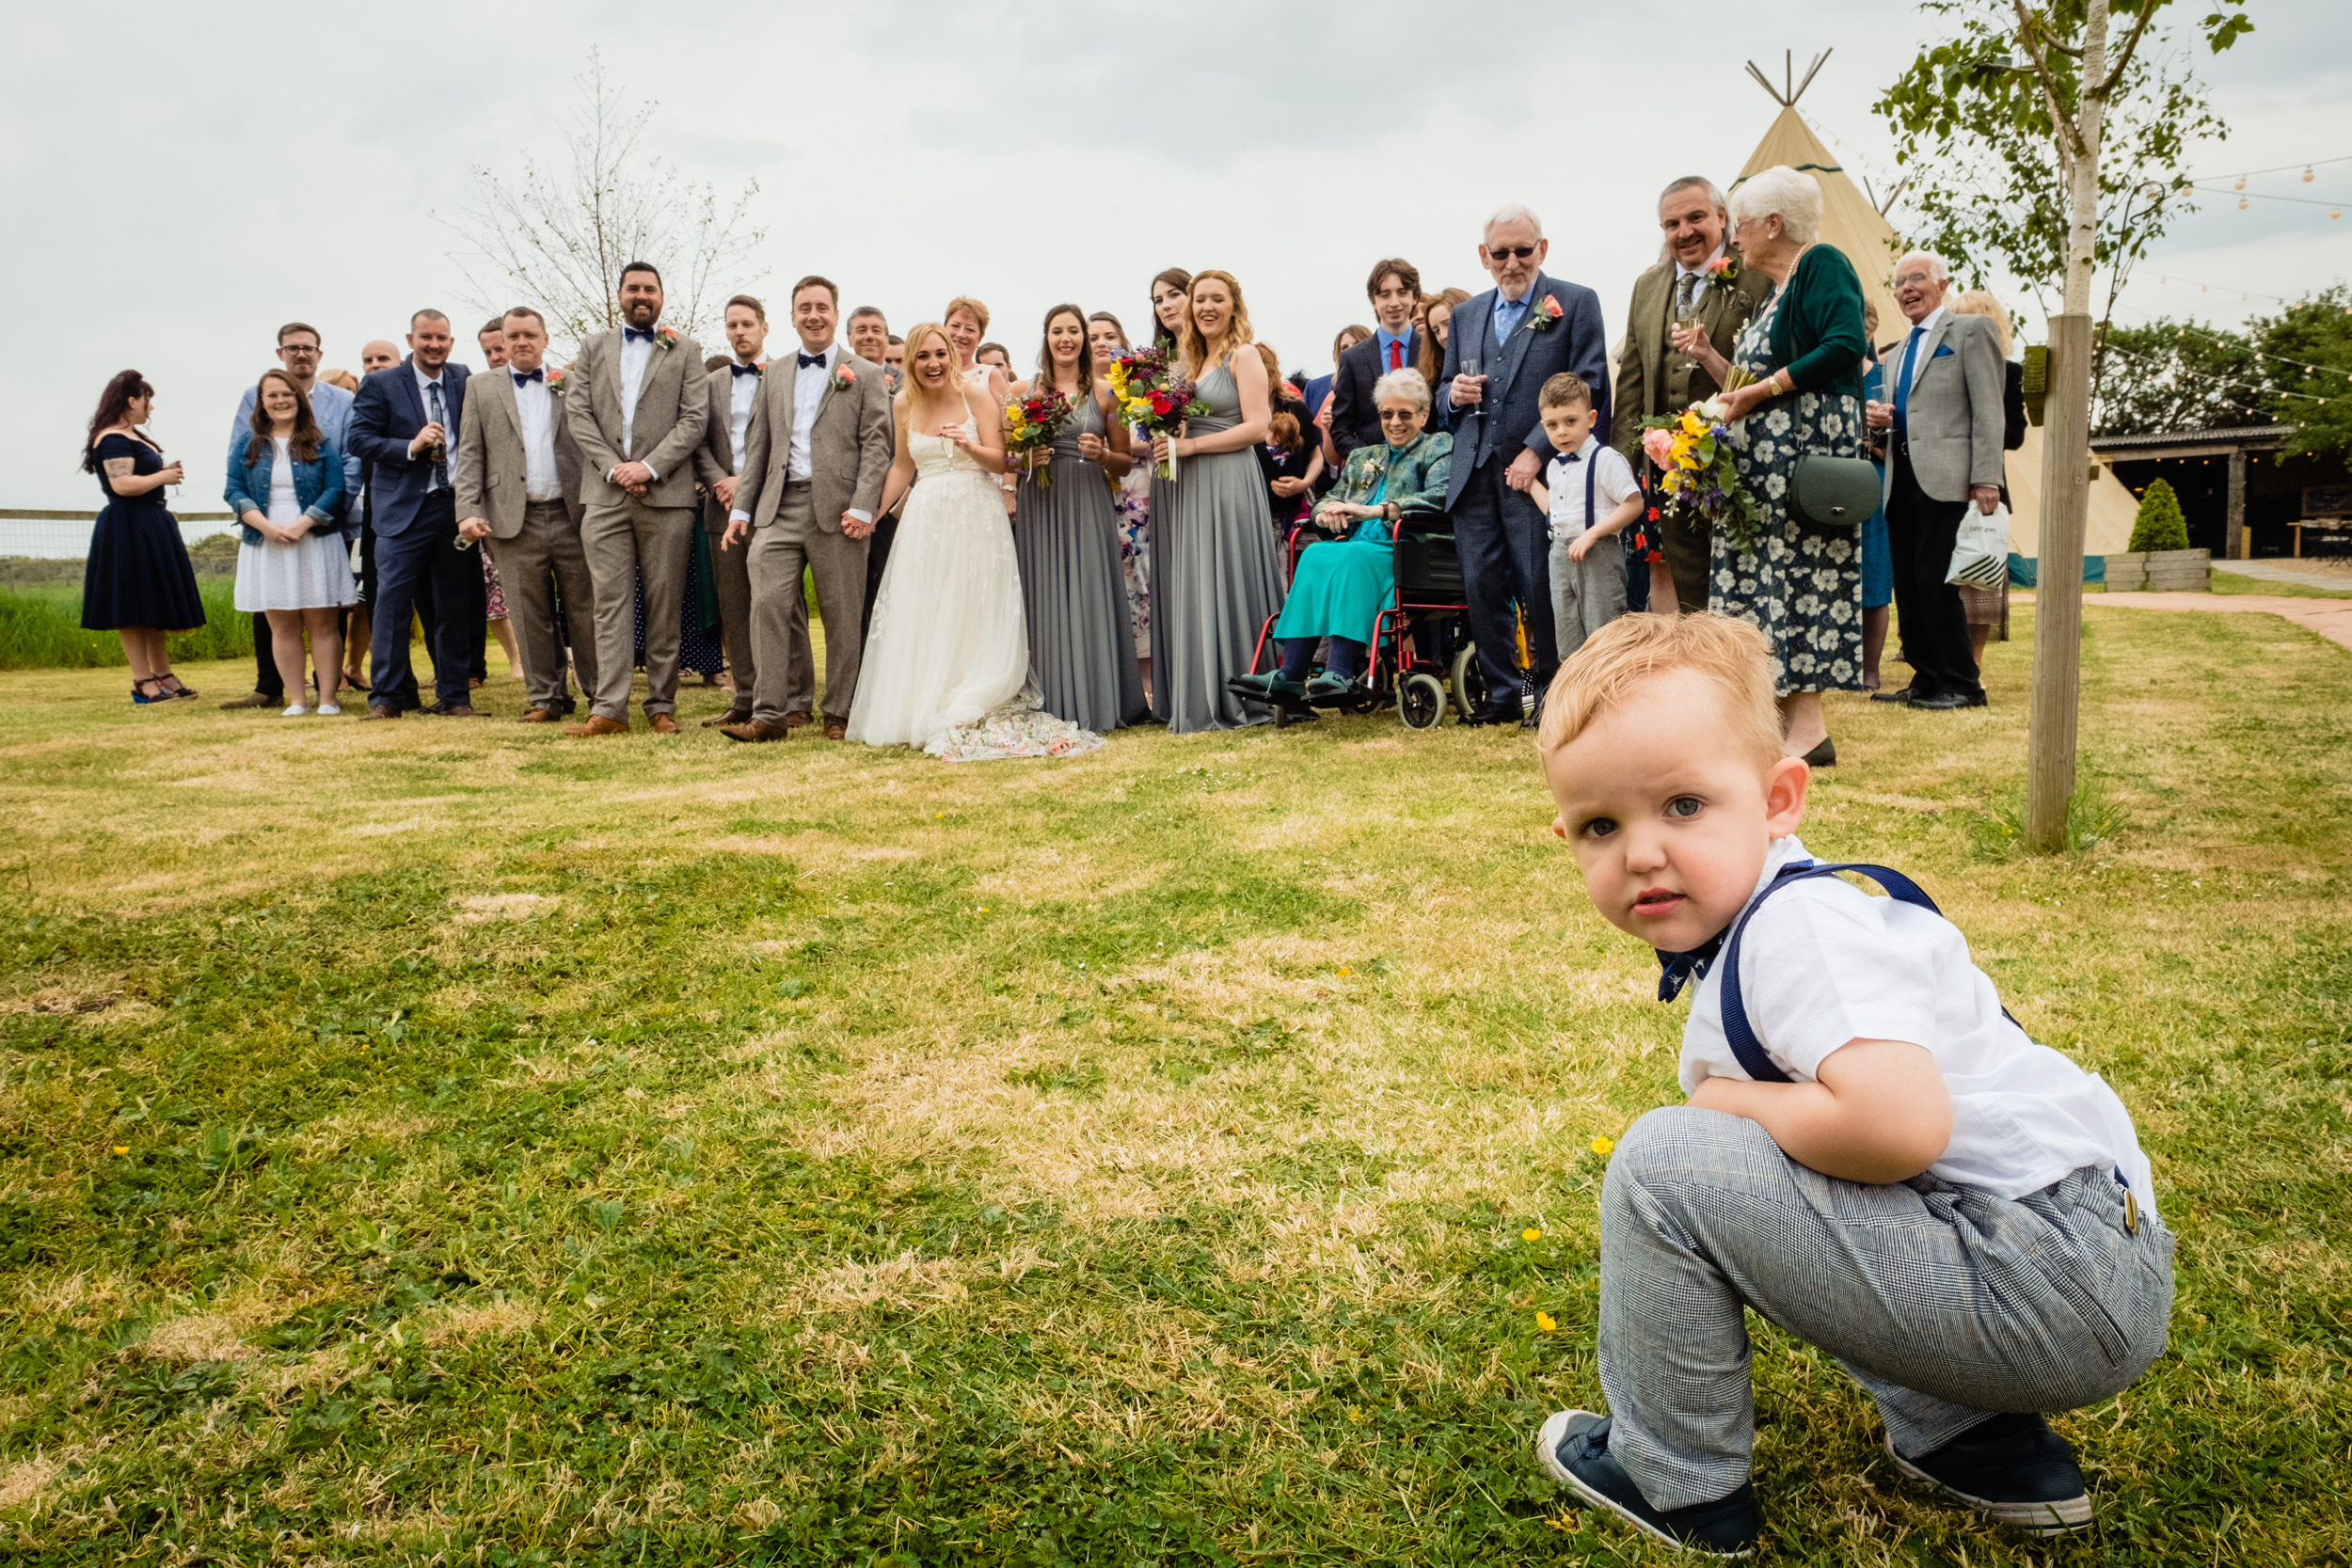 toddler refusing to get in group shot at wedding. wildwood and eden wedding photography by emma and rich.